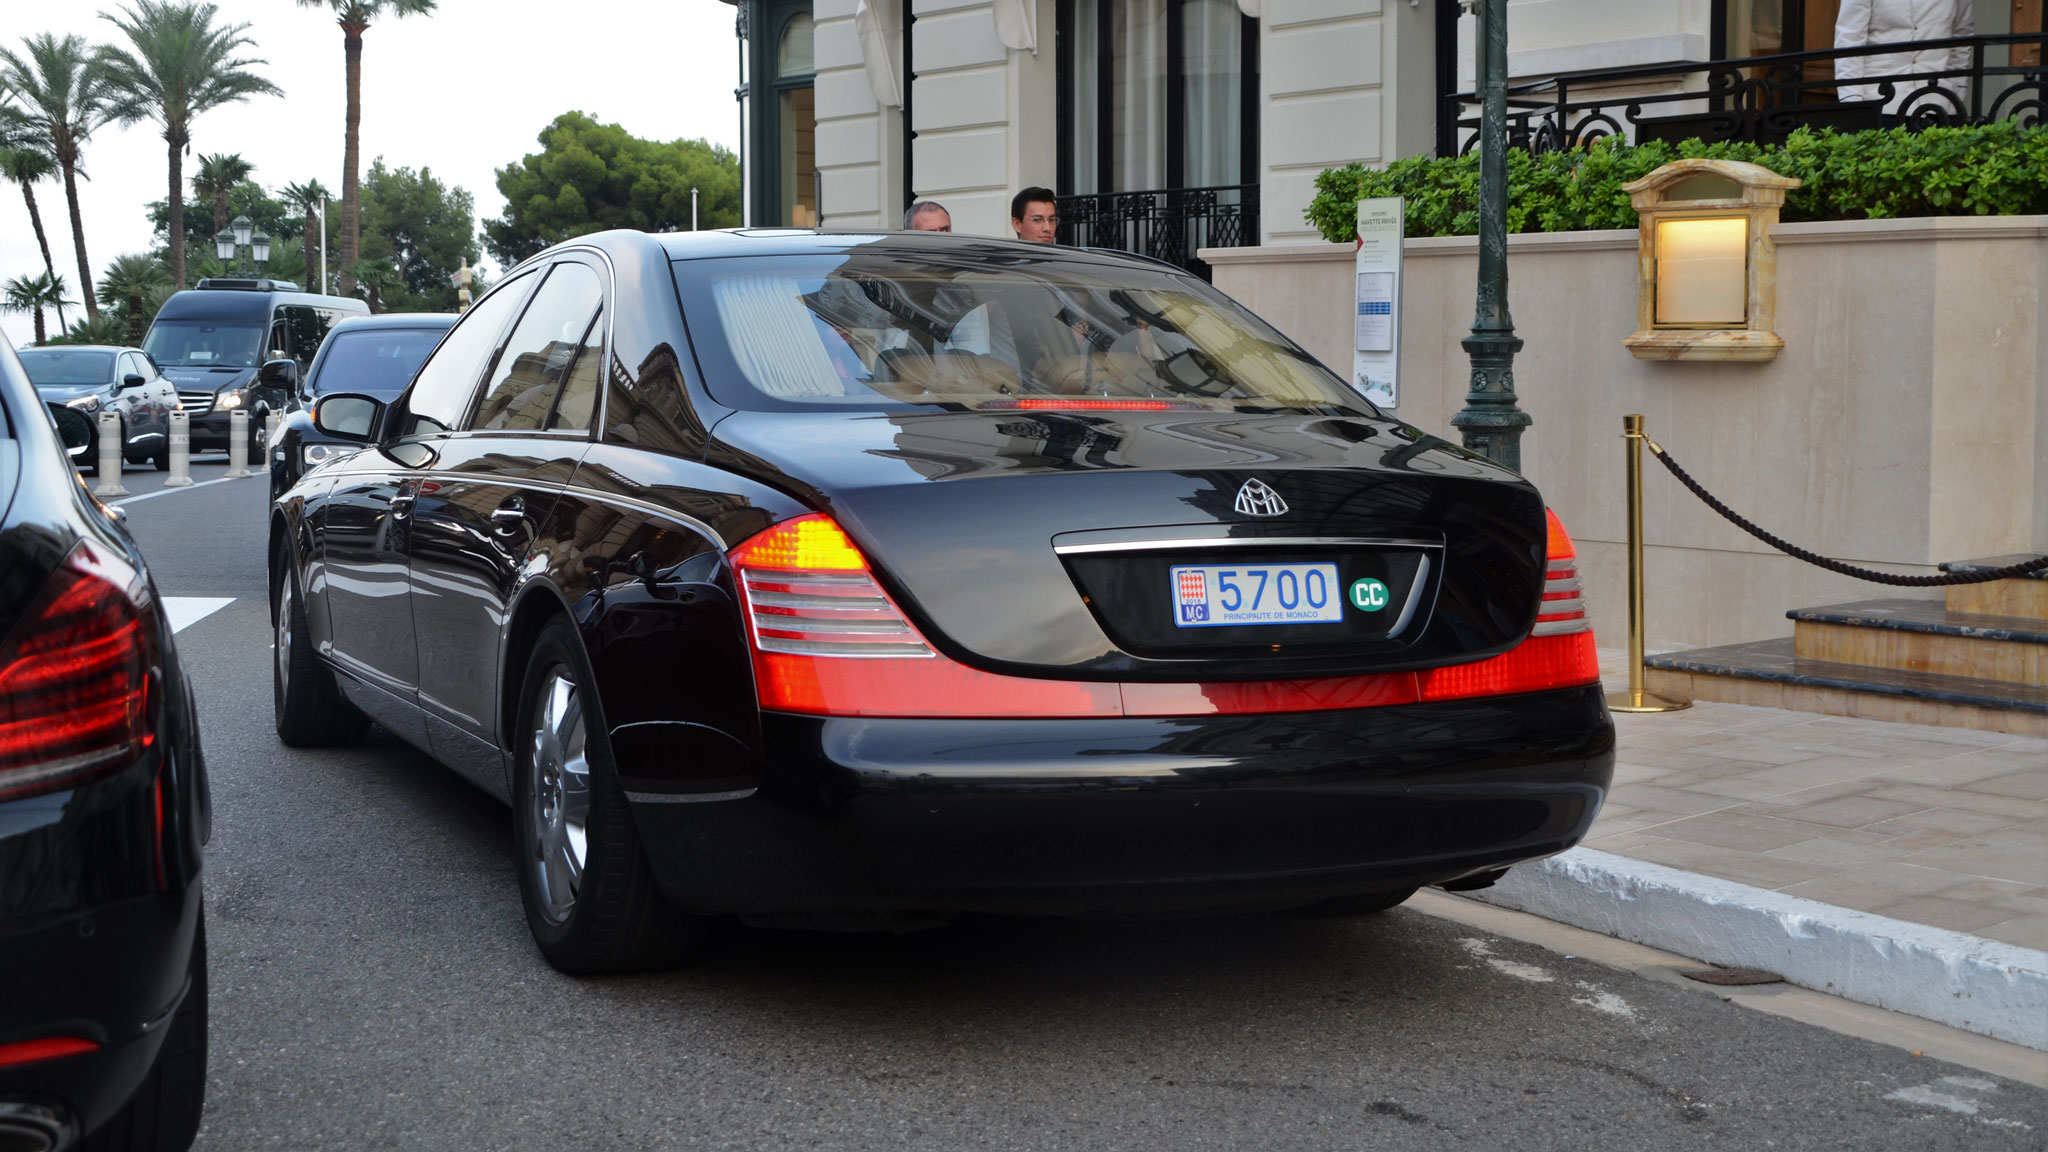 Maybach 57S - 5700 (MC)